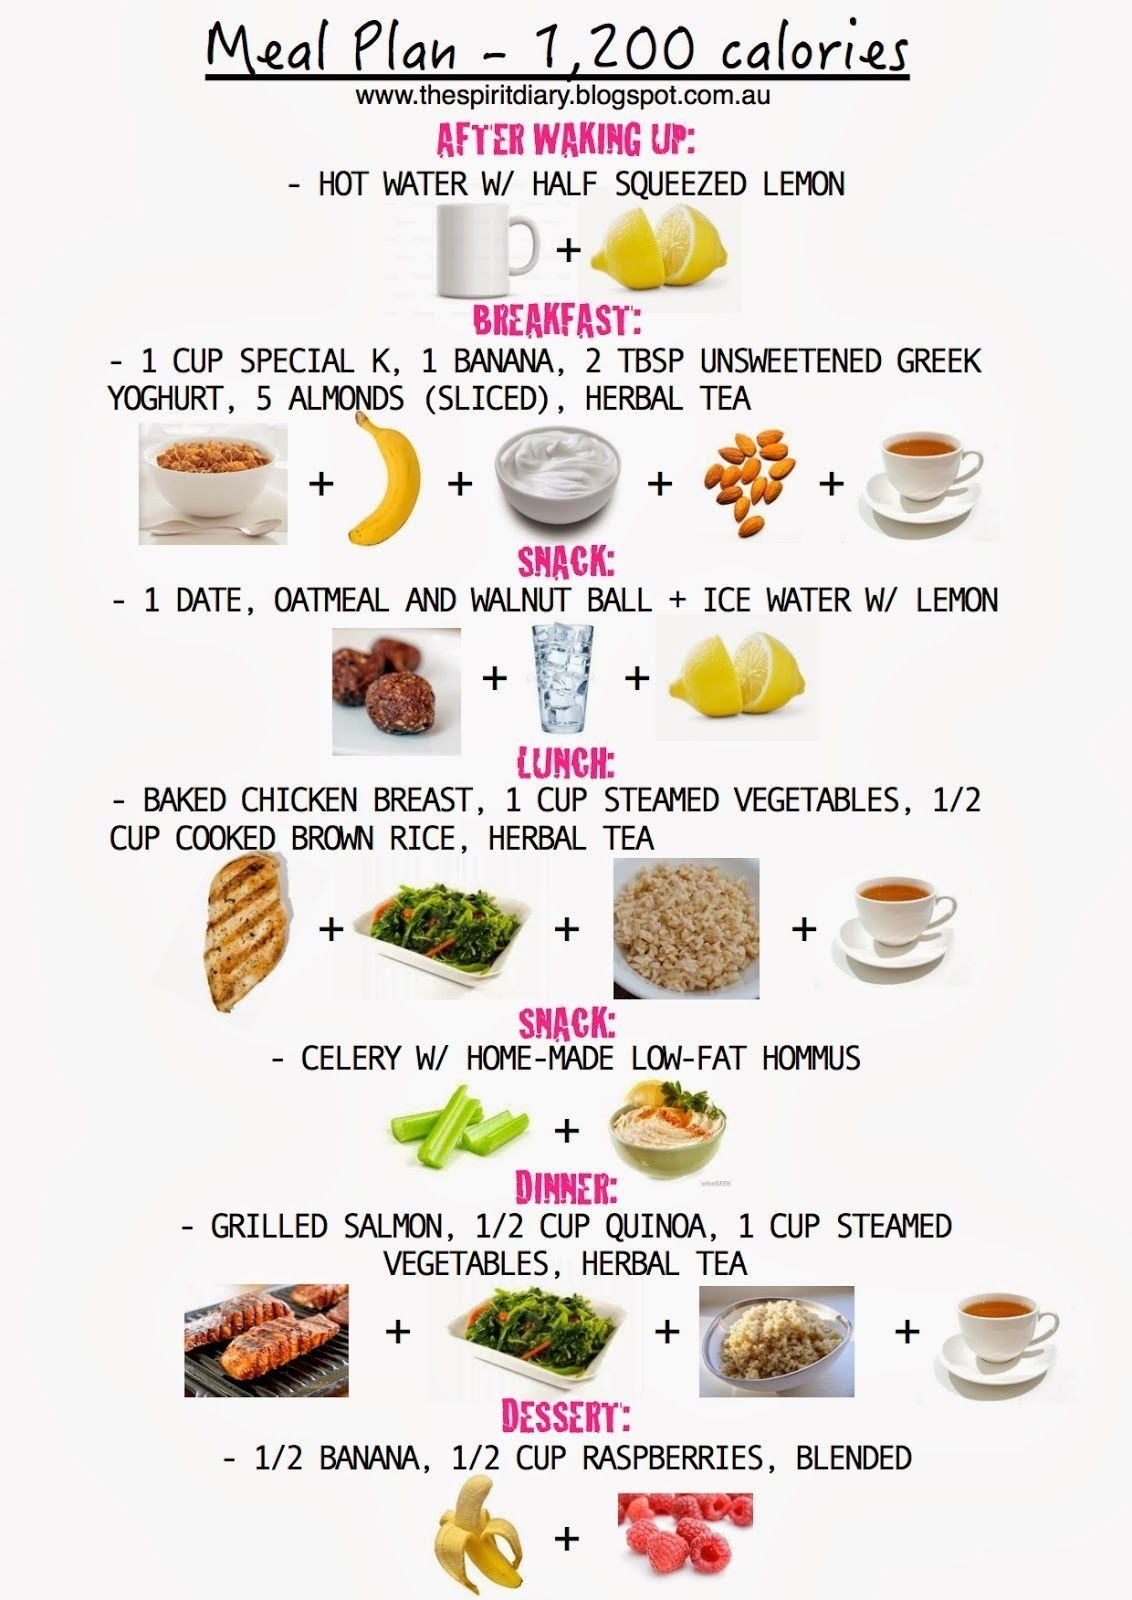 10 Unique 1200 Calorie Diet Menu Ideas meal plan 1200 calories summer the spirit diary 1200 2020